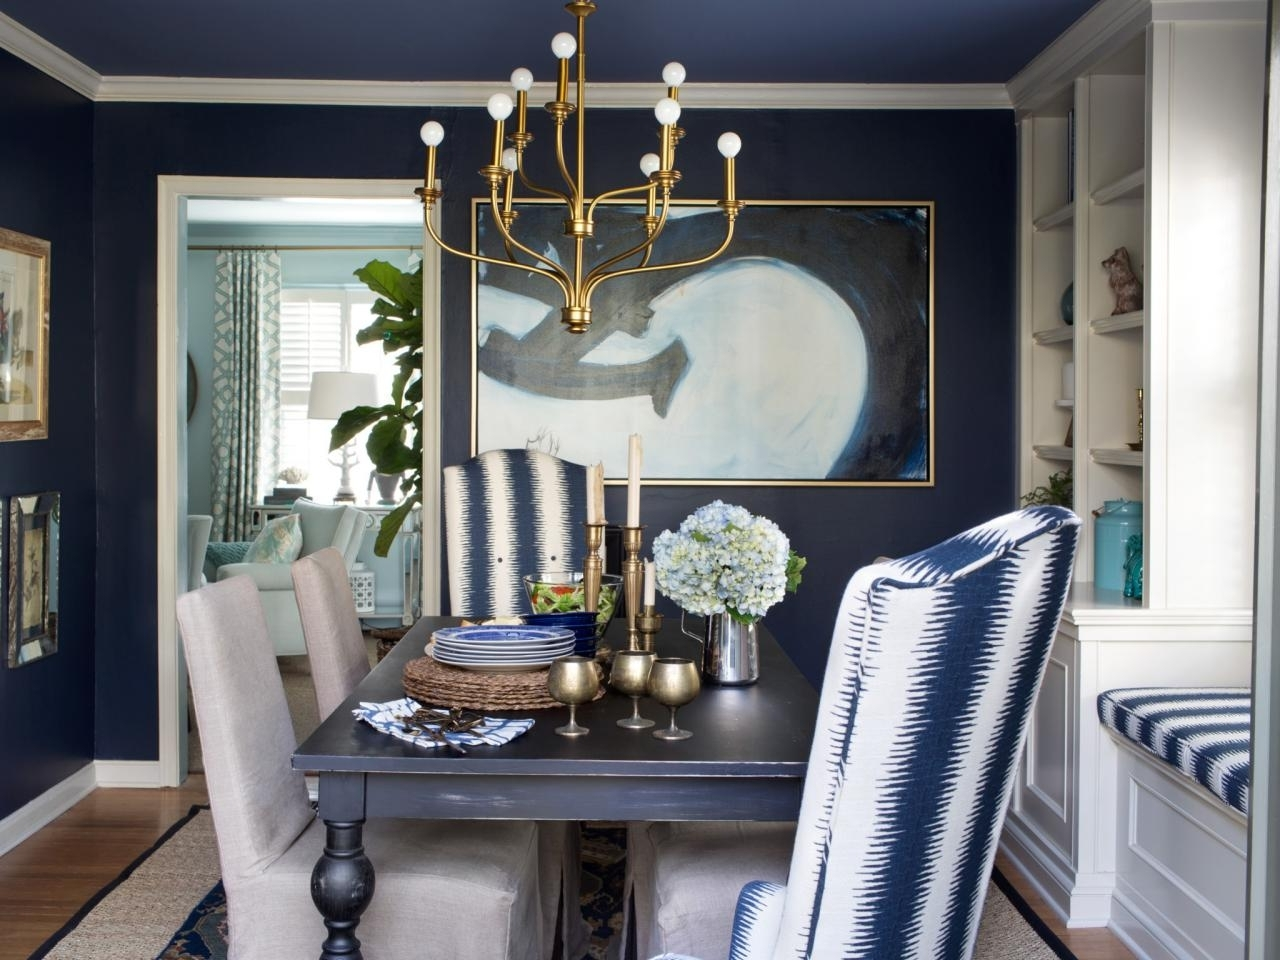 Hgtv's Decorating Inside Wall Accents For Blue Room (View 15 of 15)